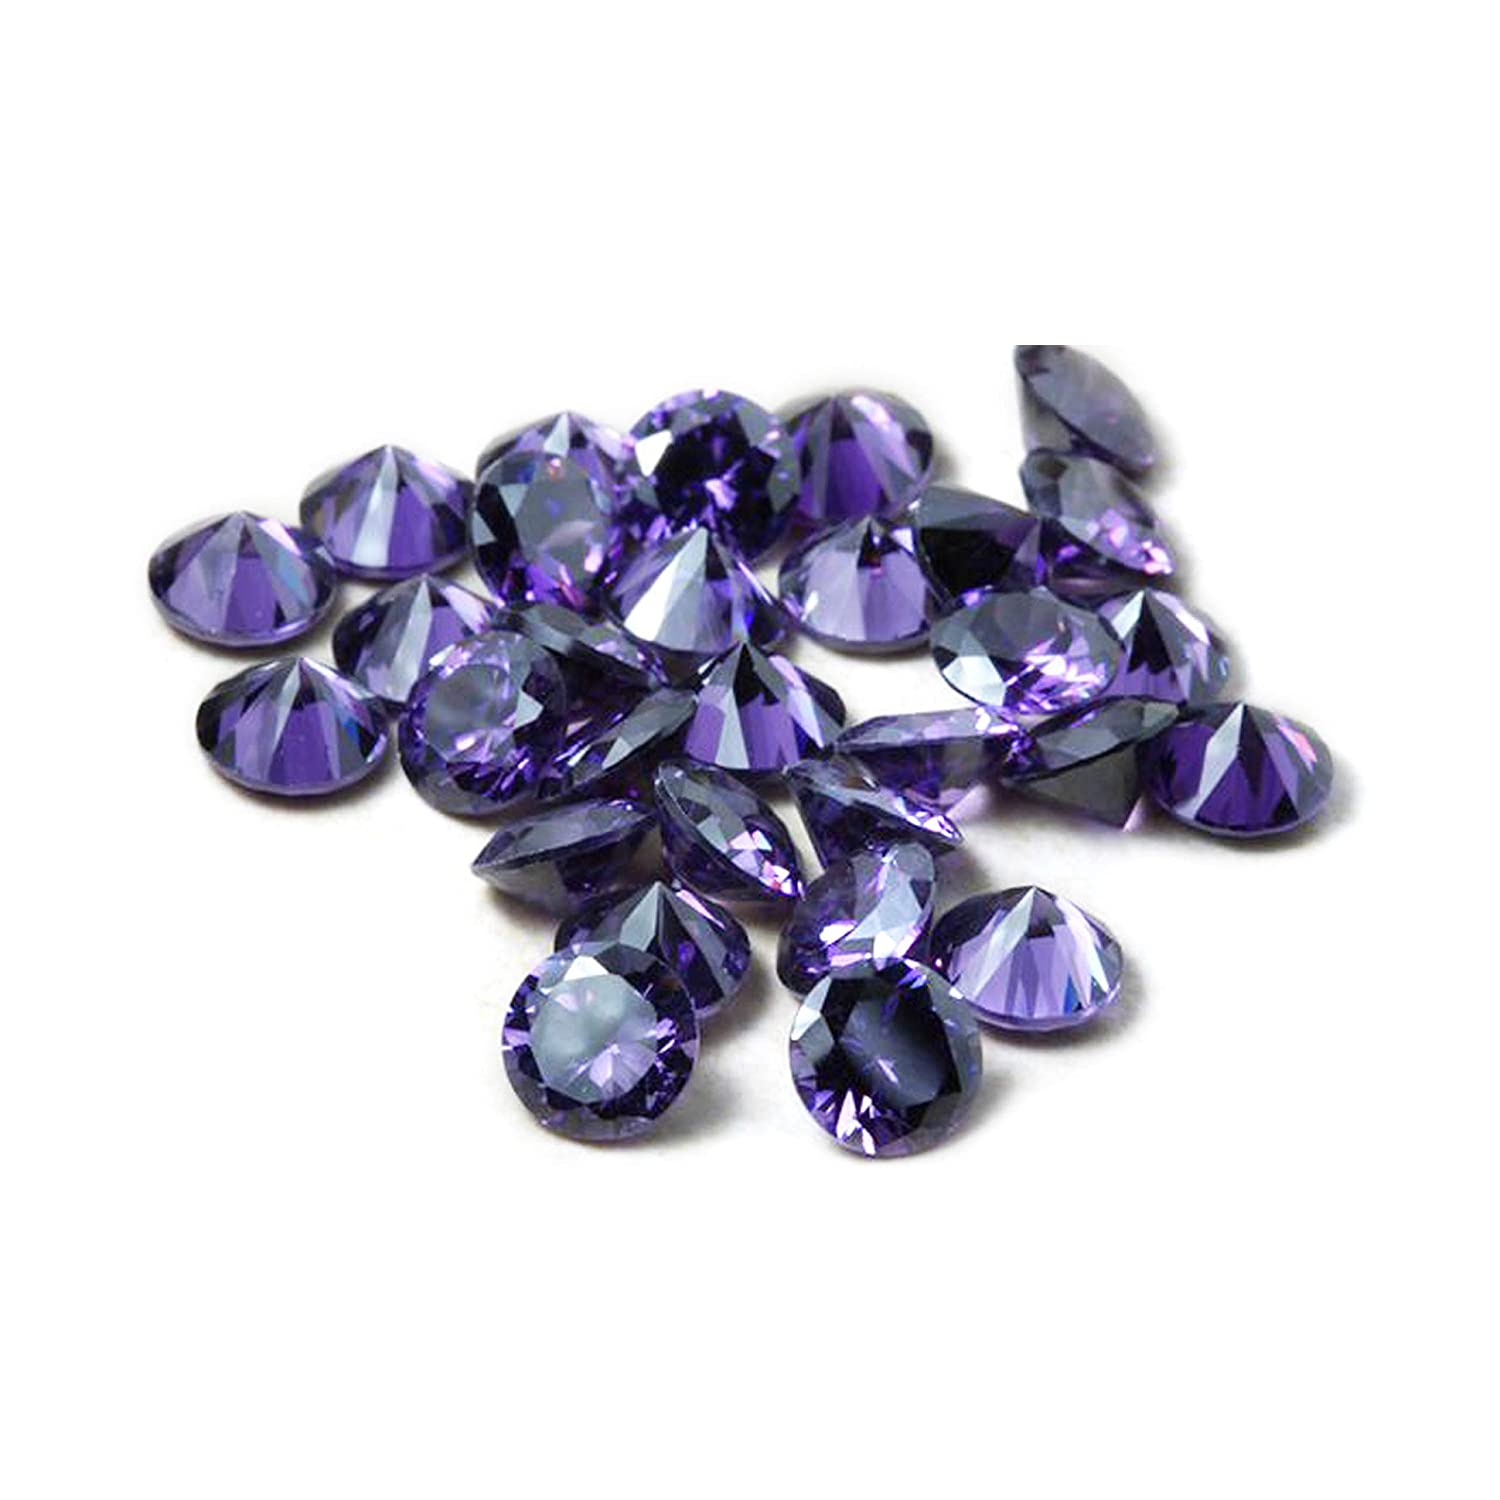 Neerupam Collection Amethyst Purple Colour Cubic Zirconia AAA Loose Gemstones Round 1mm - 10mm, Cubic Zirconia CZ Stone Ring/Necklace/Earrings, Jewelry DIY, Jewelry Making(1mm/1000pcs) NC-CCZ-AAA-AME-1